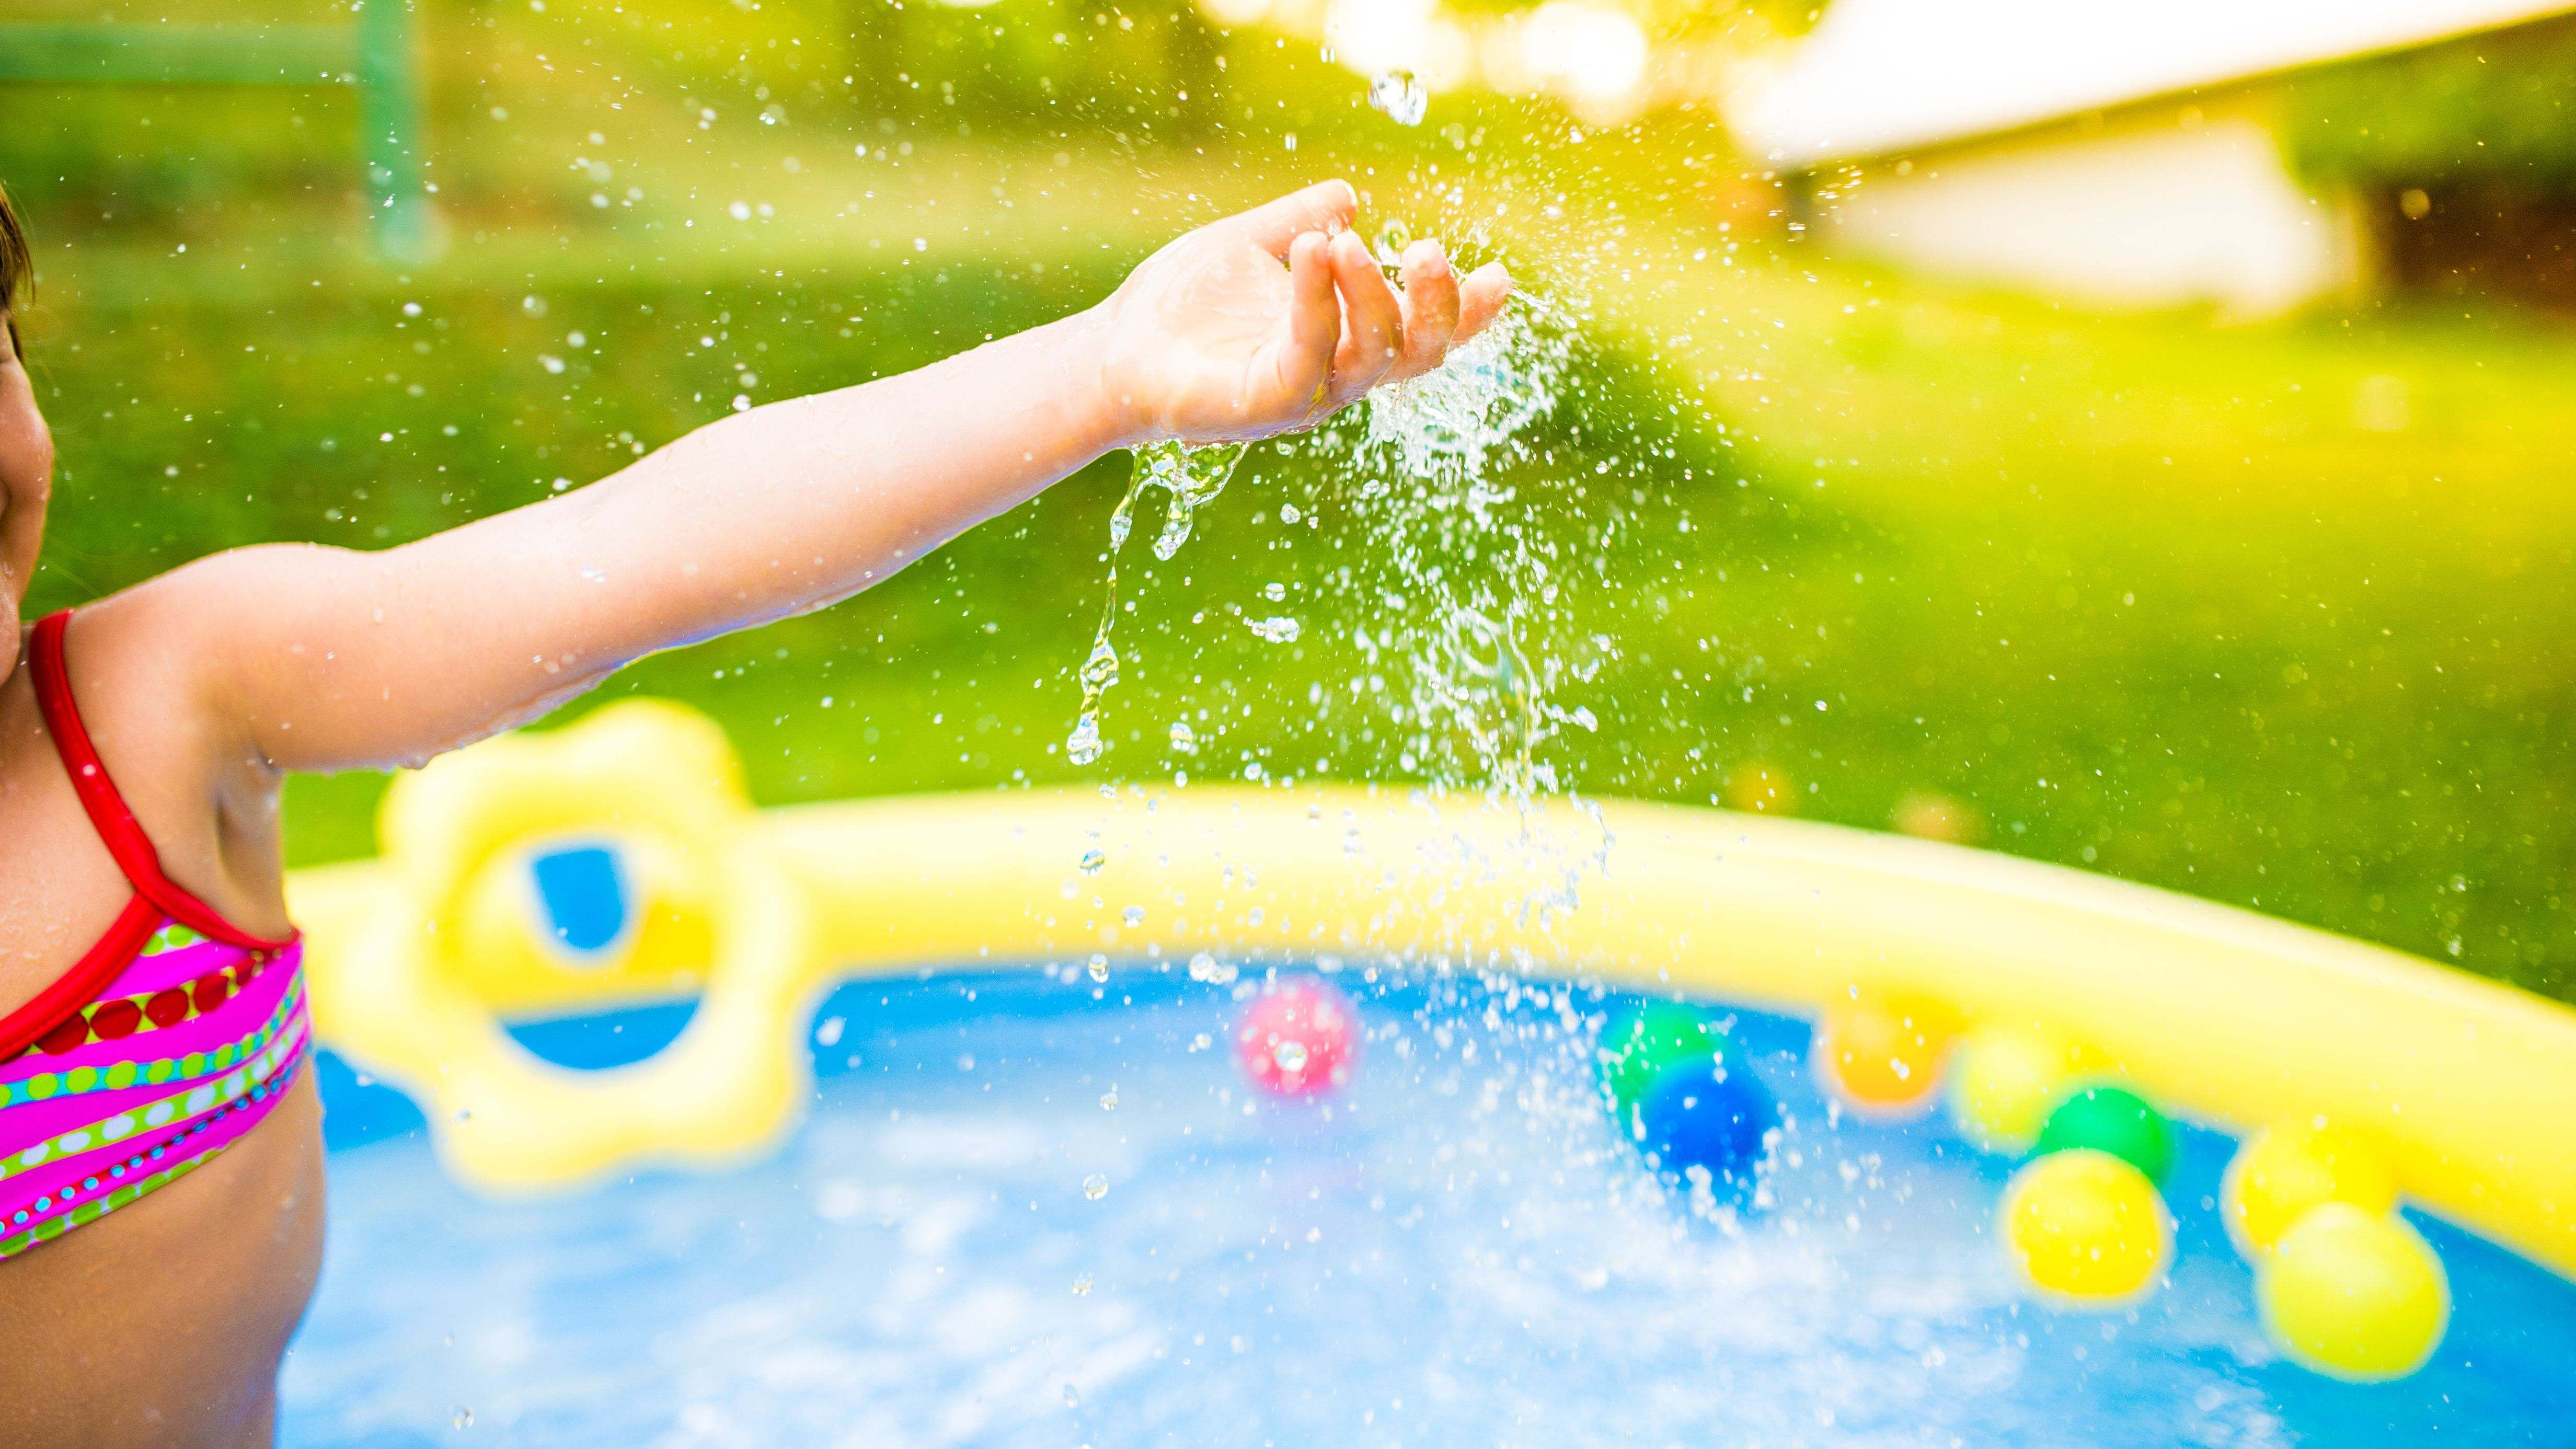 Children's pool buying guide